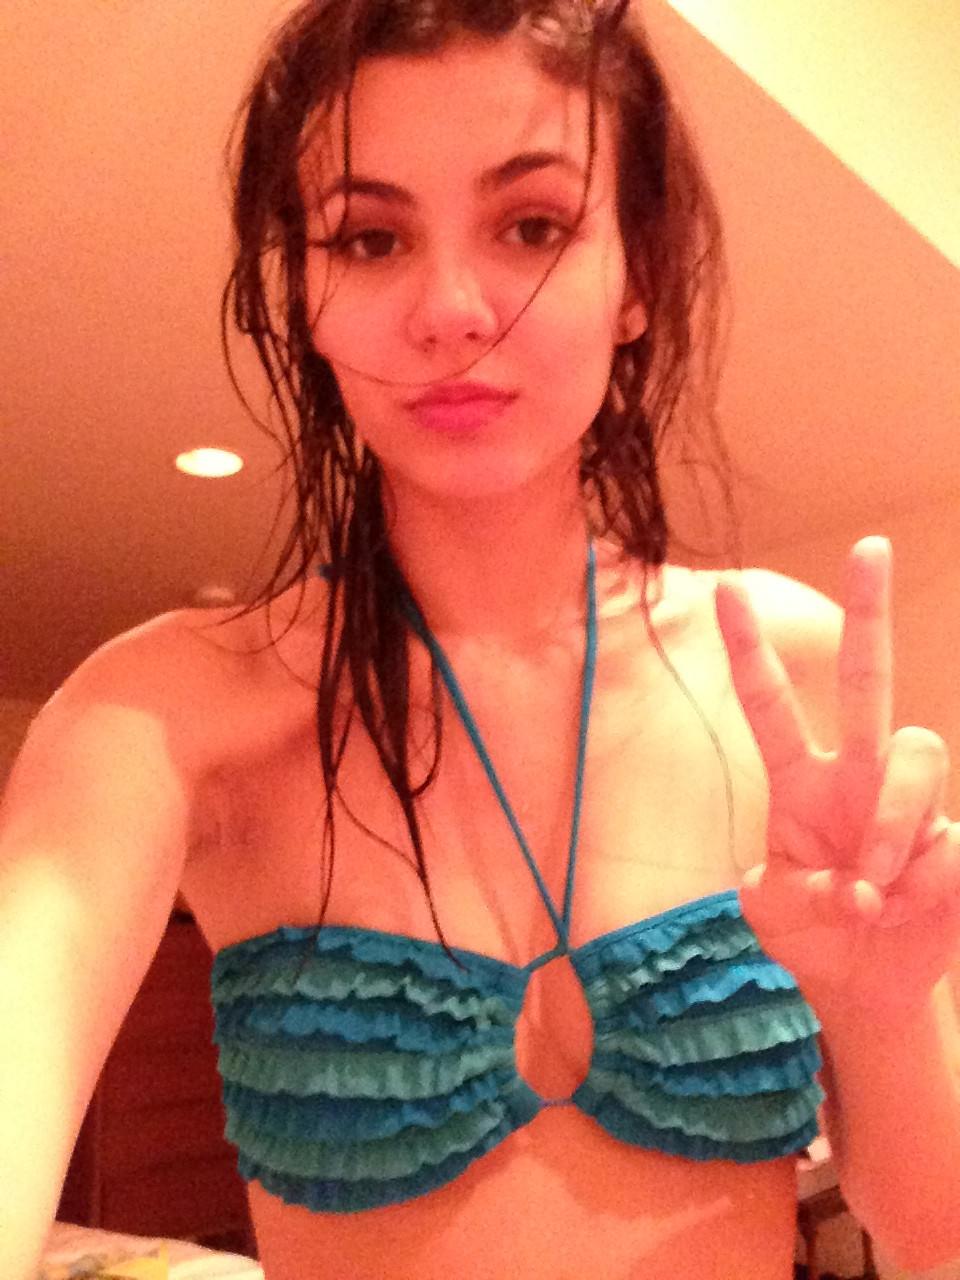 FULL VIDEO: Victoria Justice Sex Tape And Nudes Leaked!